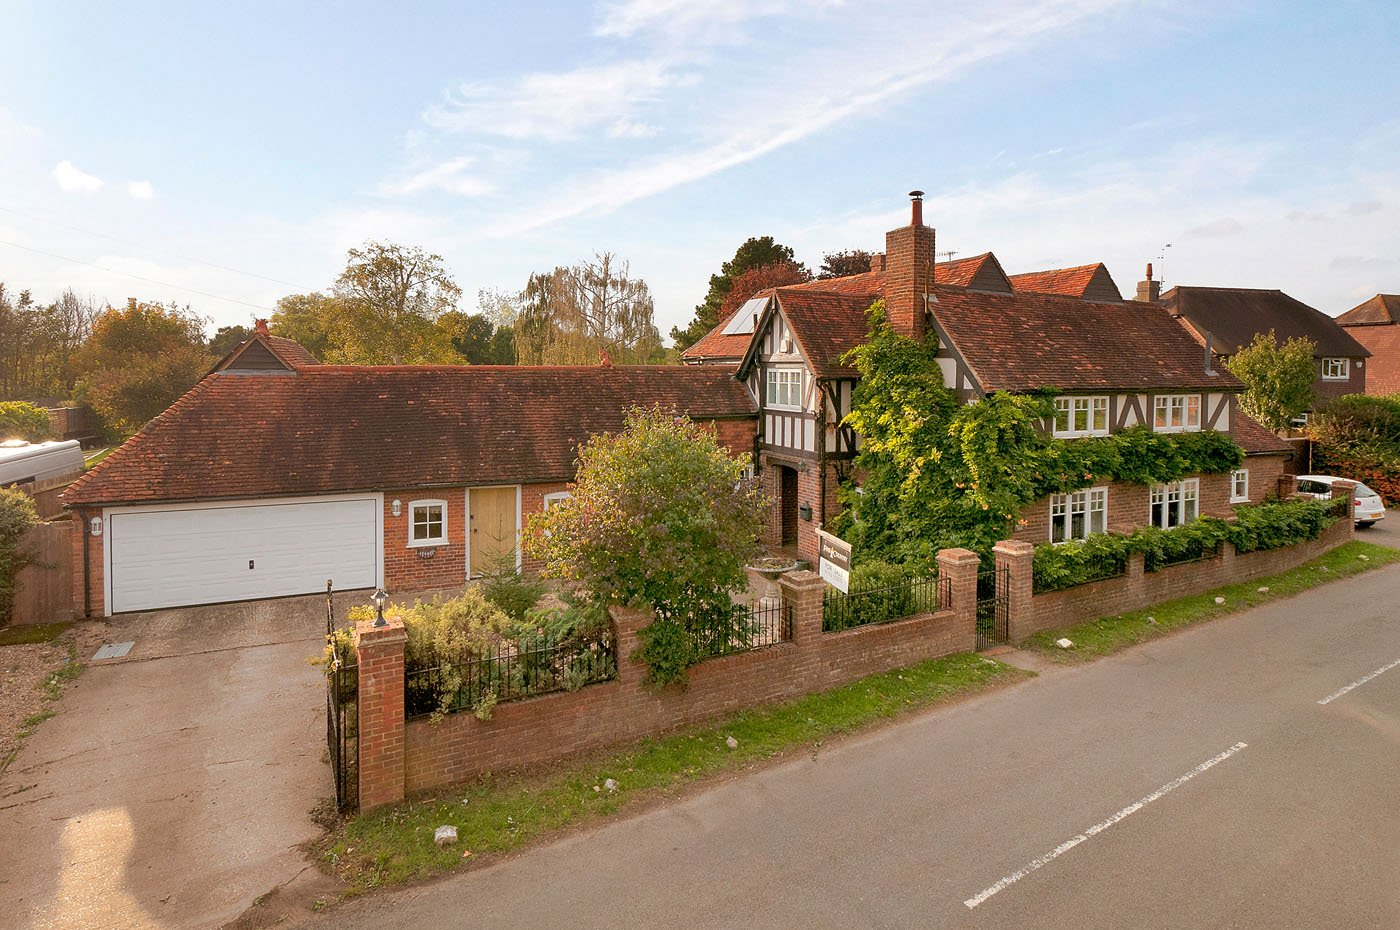 attractive traditional timber framed leafy facade family cottage house